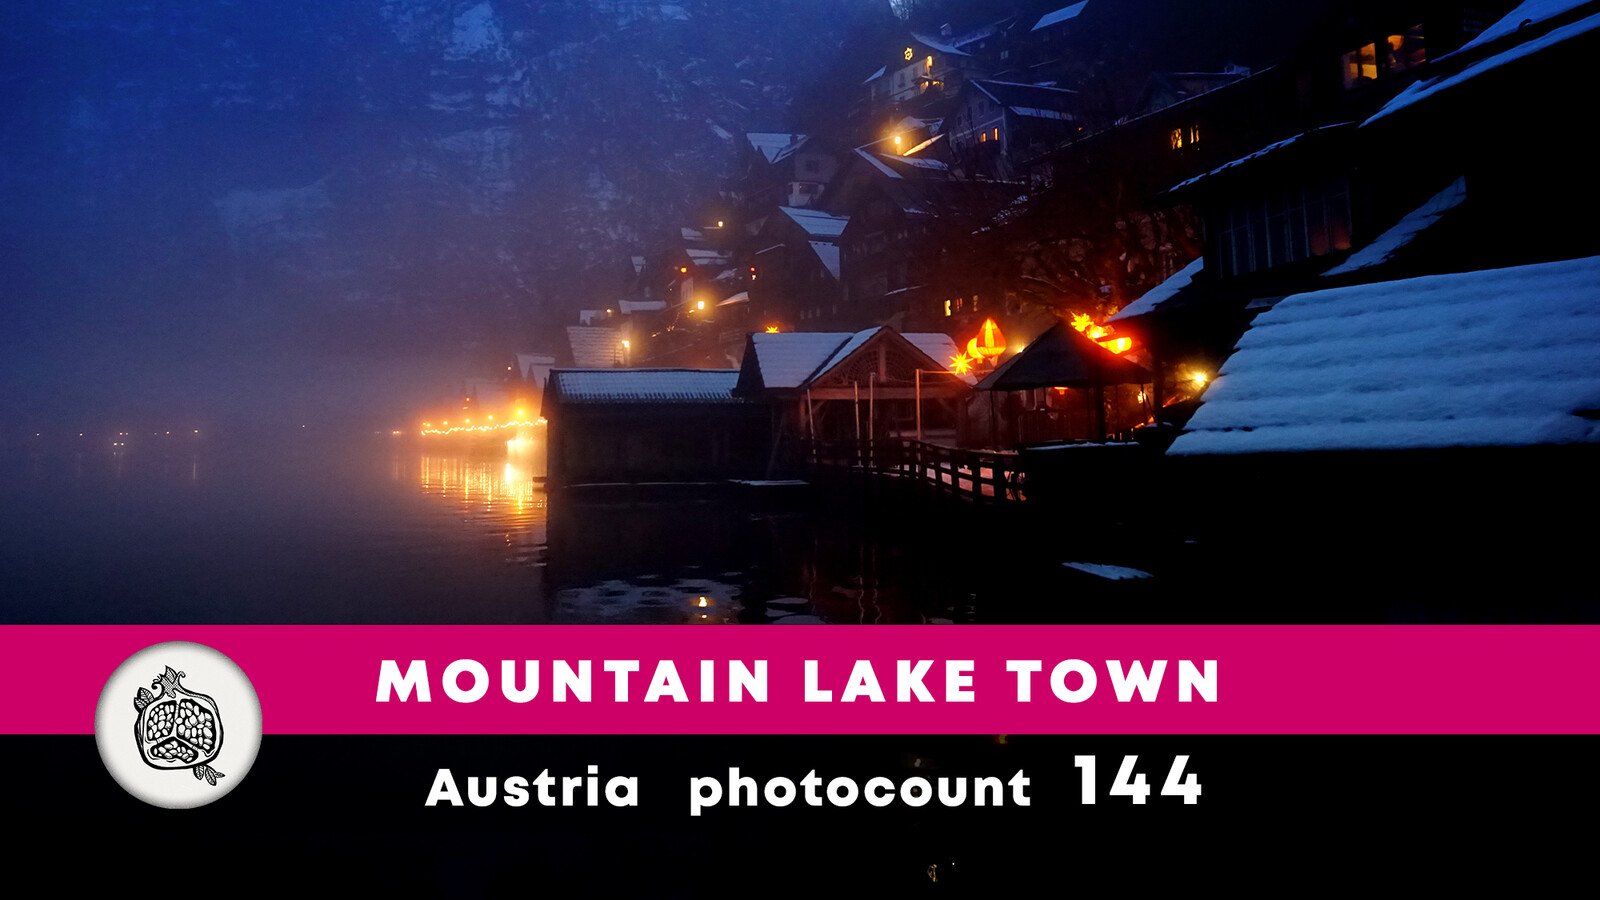 Mountain lake town